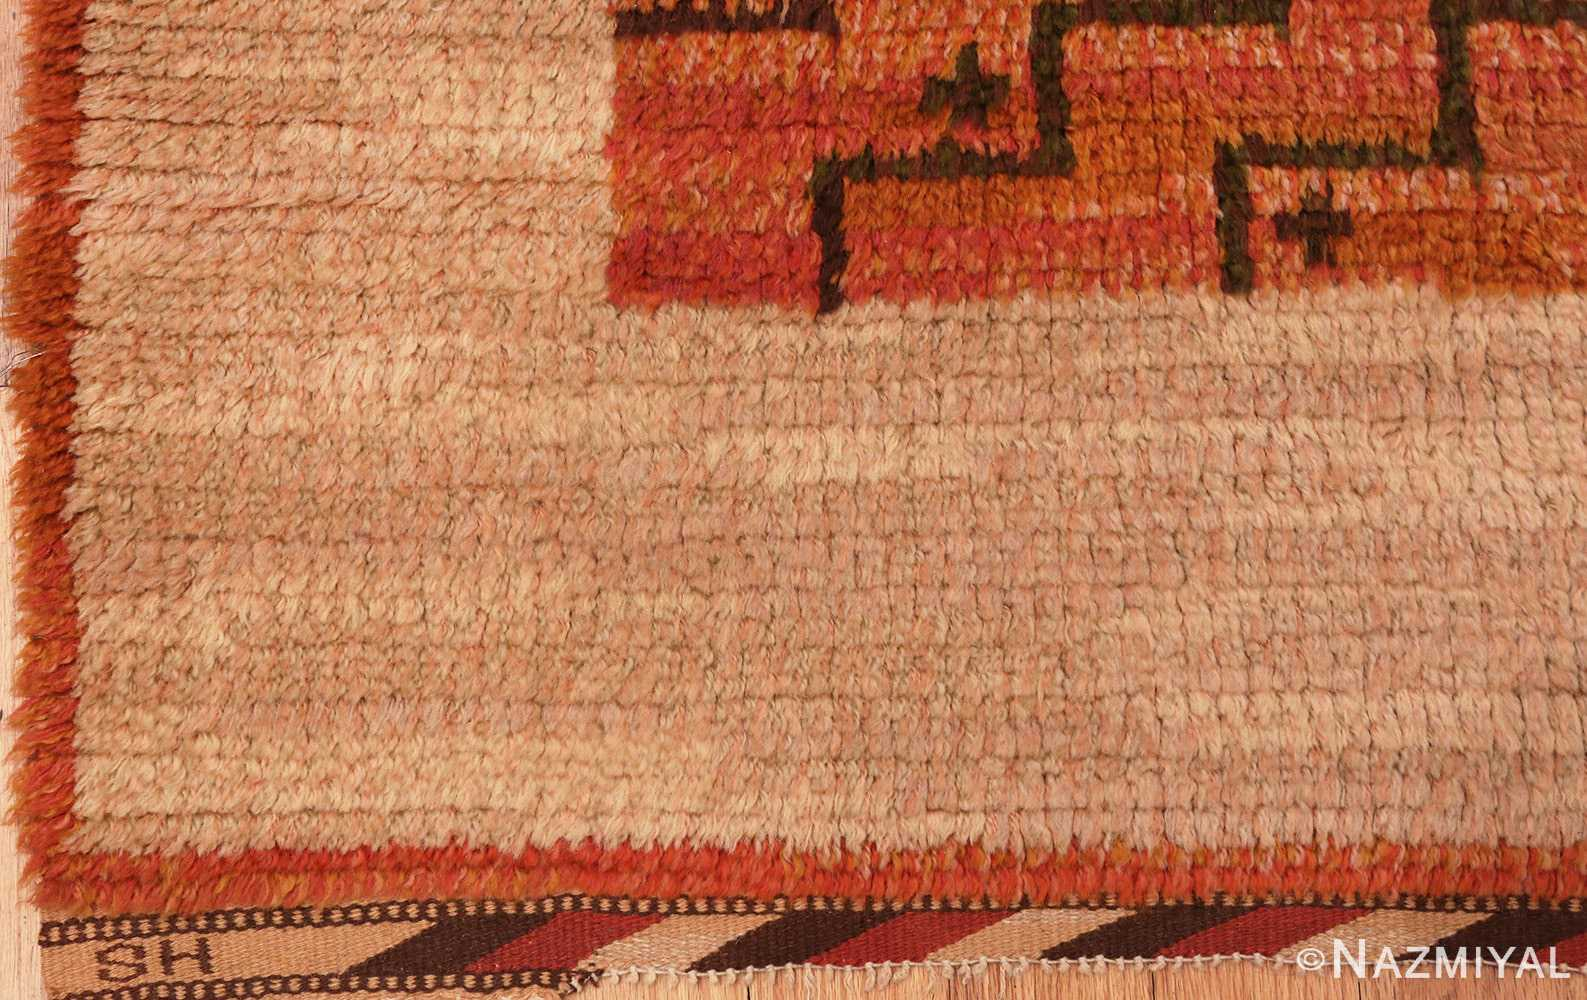 Picture of the signature of the square vintage Scandinavian Swedish Rug #40294 from Nazmiyal Antique Rugs in NYC